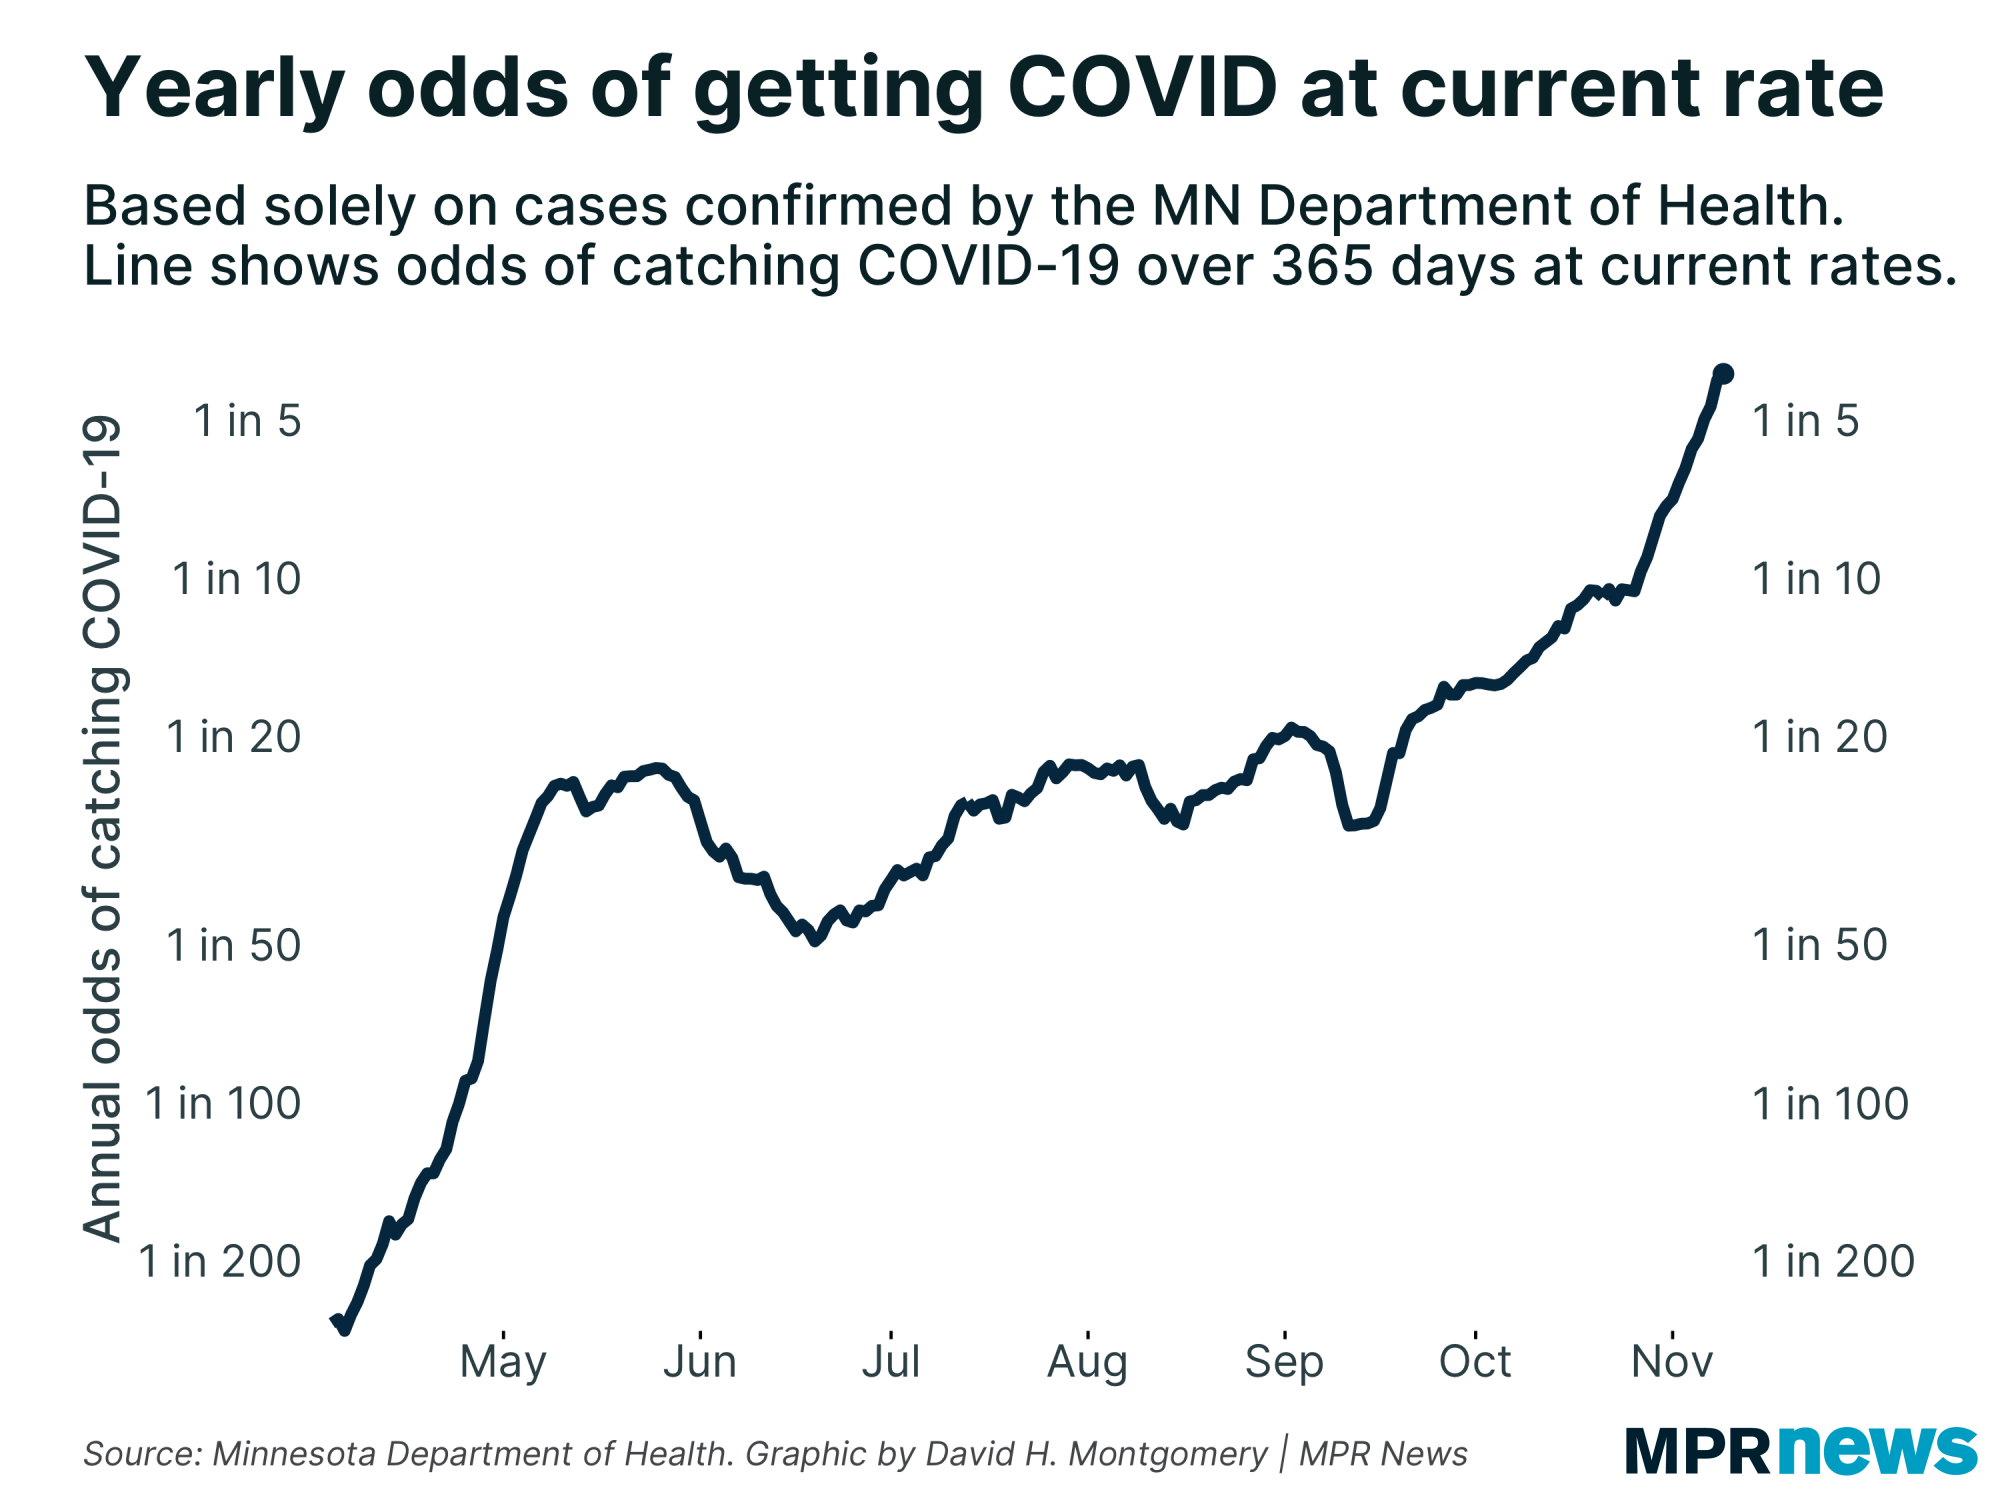 Yearly odds of getting COVID-19 at the current case rate in Minnesota